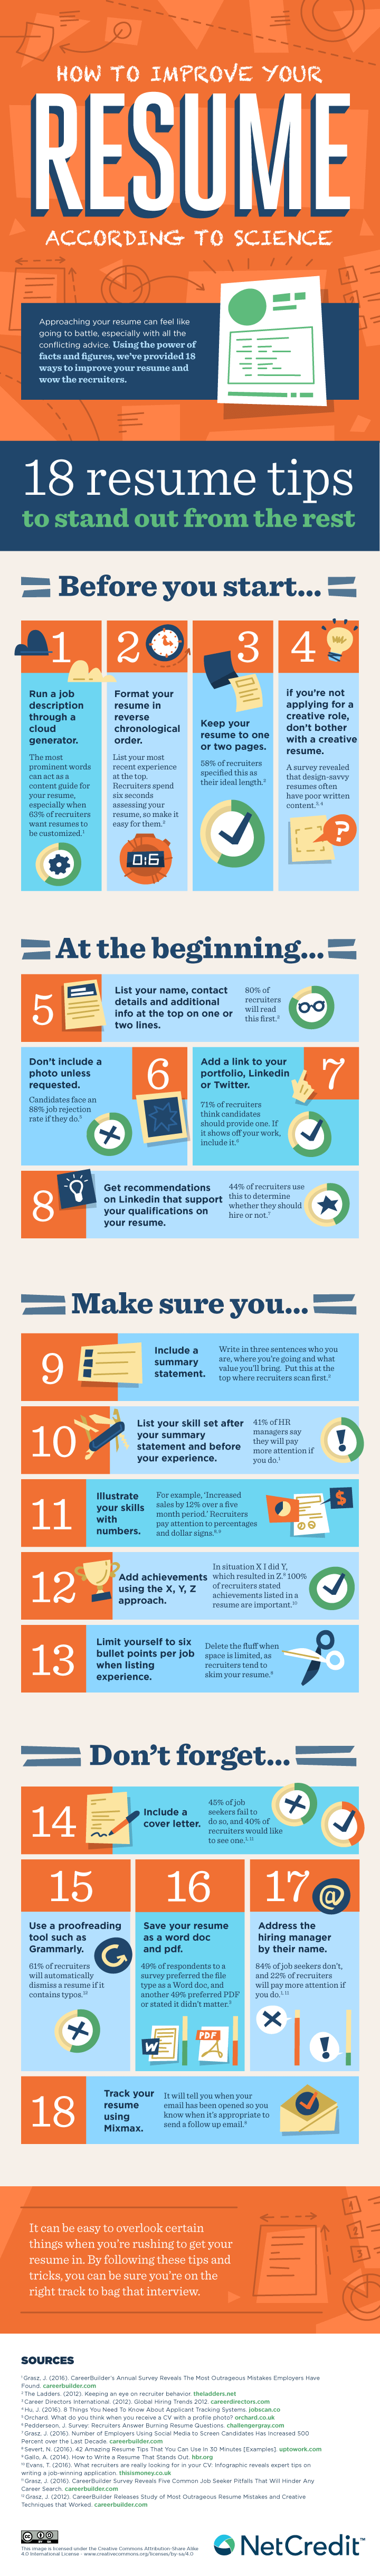 How to Improve Your Resume According to Science